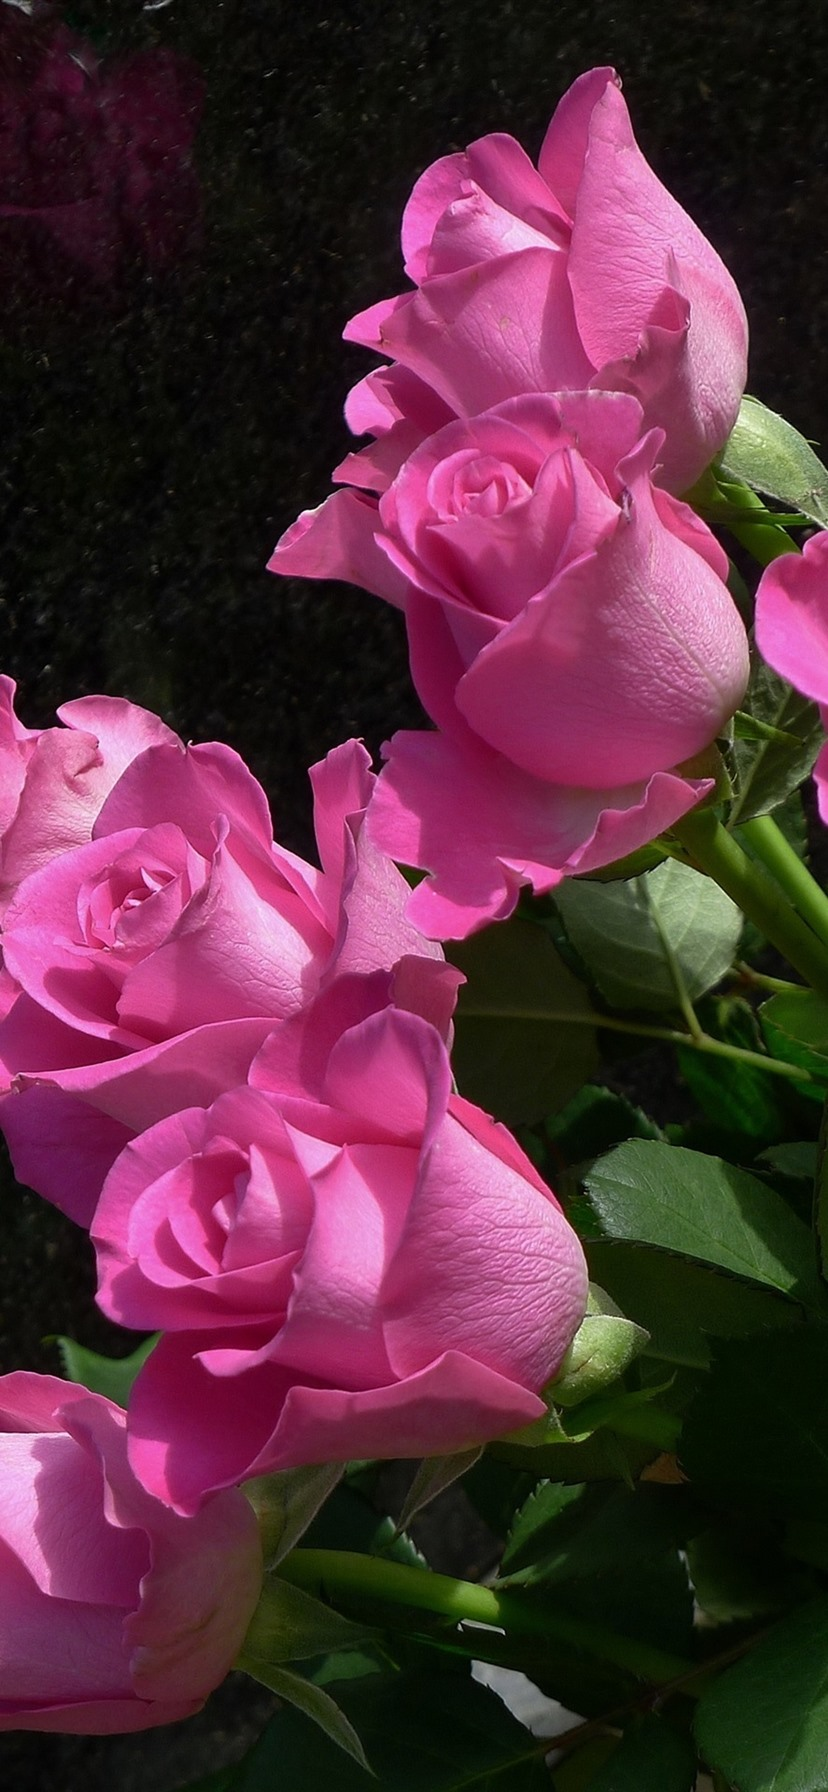 Pink Roses Flowers Black Background 1125x2436 Iphone 11 Pro Xs X Wallpaper Background Picture Image